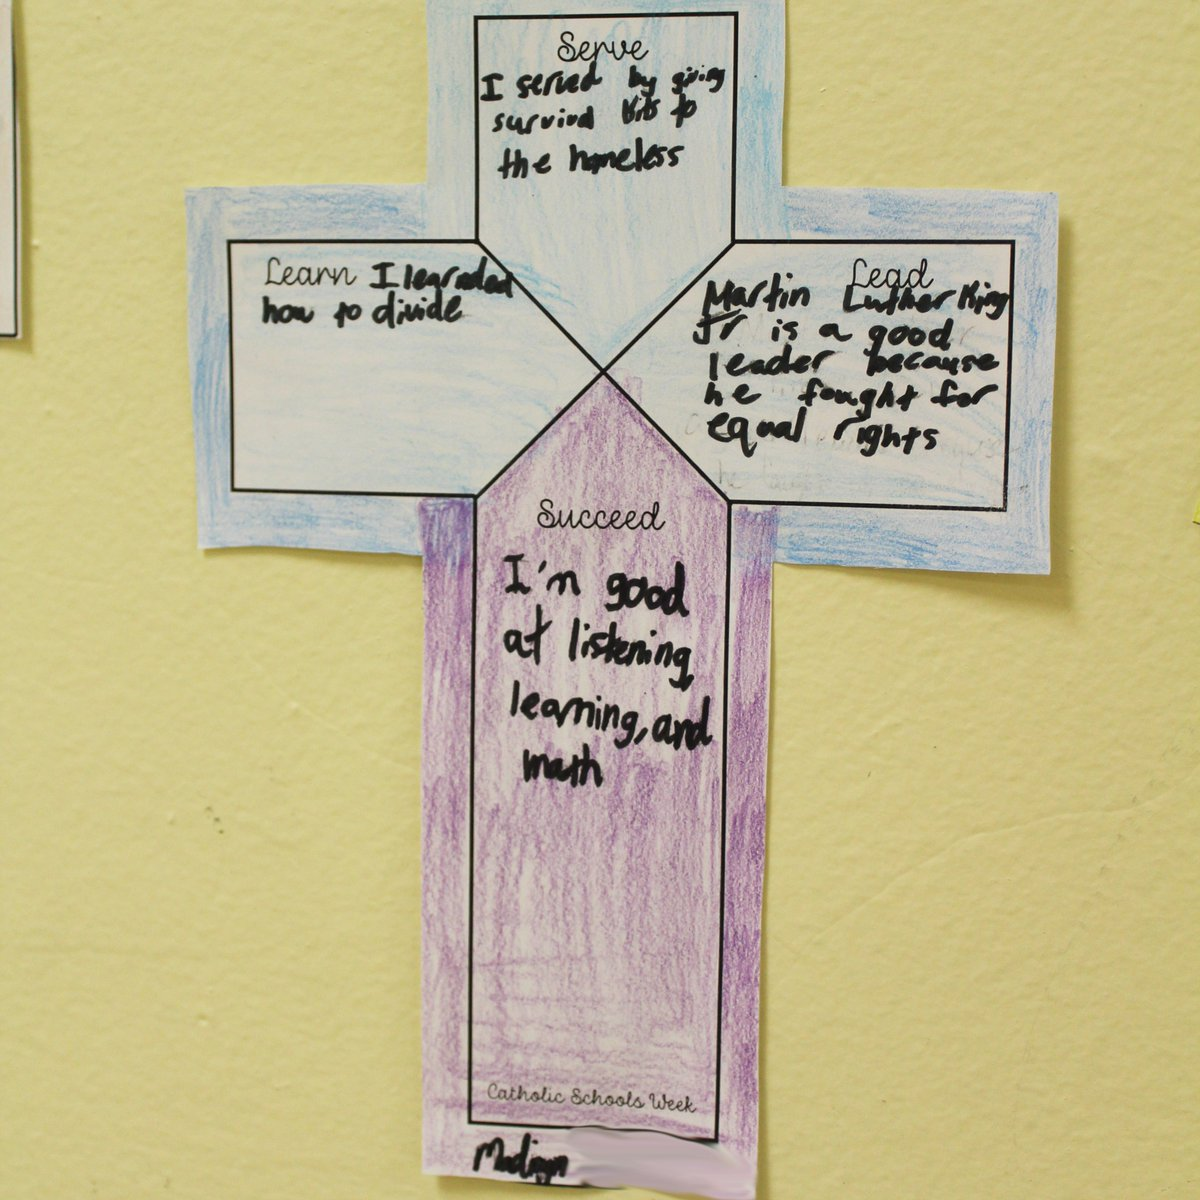 Celebrating Catholic Schools Week at Gesu School! Reflections by 4th grade girls on how Gesu School nurtures faith and fosters skills to learn, lead, serve, and succeed. #CSW20<br>http://pic.twitter.com/nb9Ow8lQAb